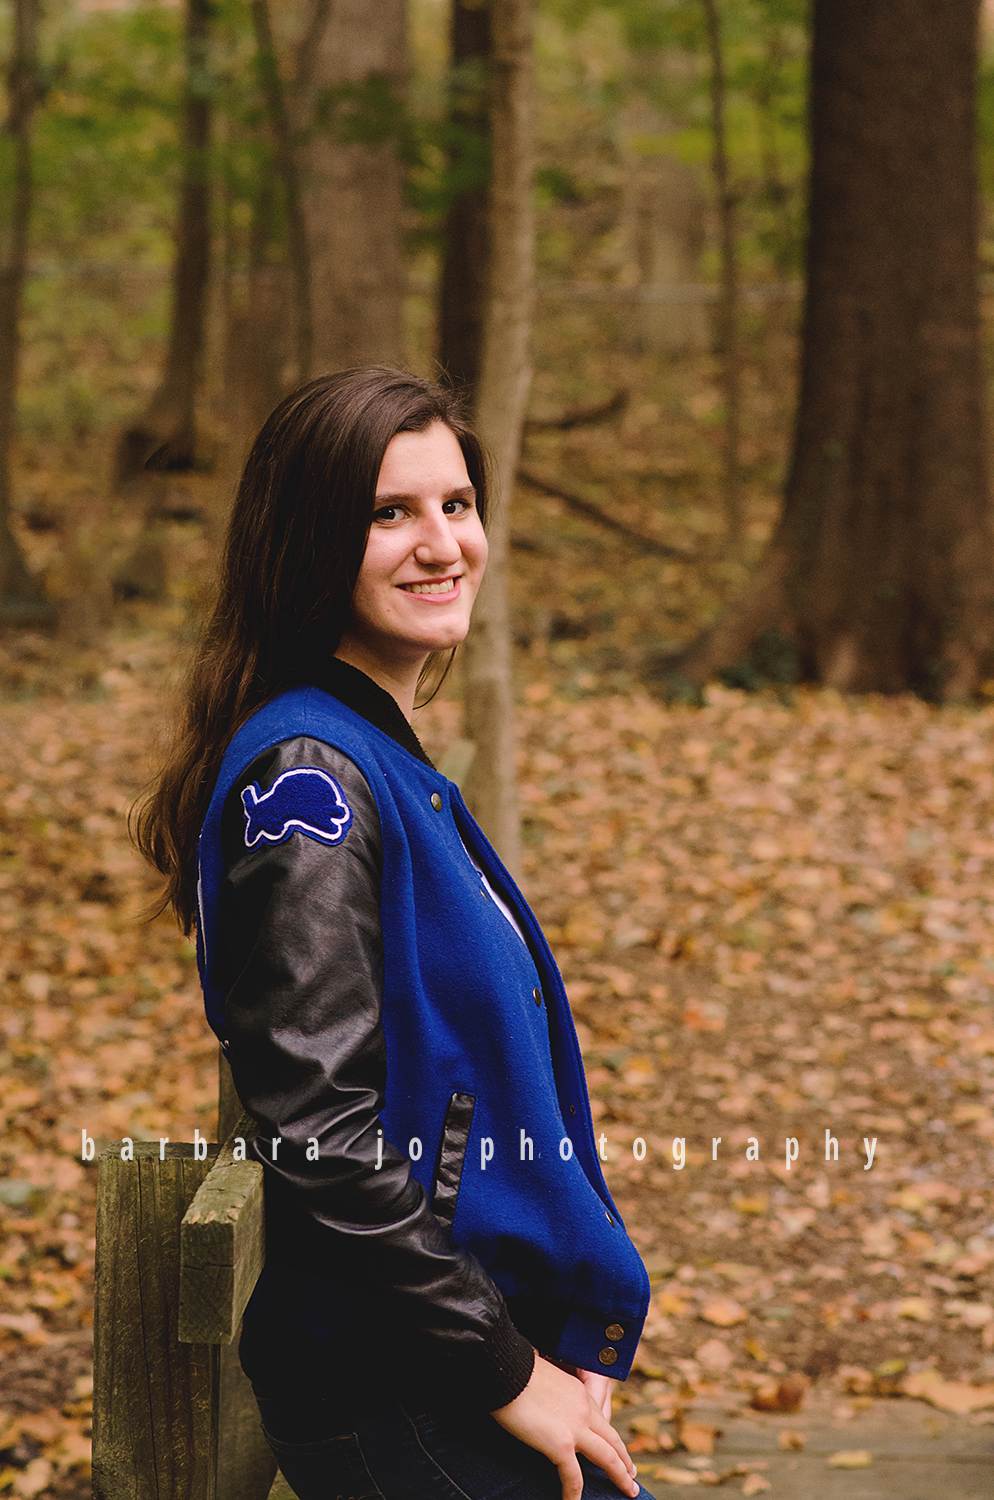 bjp-senior-pictures-cross-country-runner-bexley-columbus-new-philadelphia-ohio-class-of-2018-tori14.png